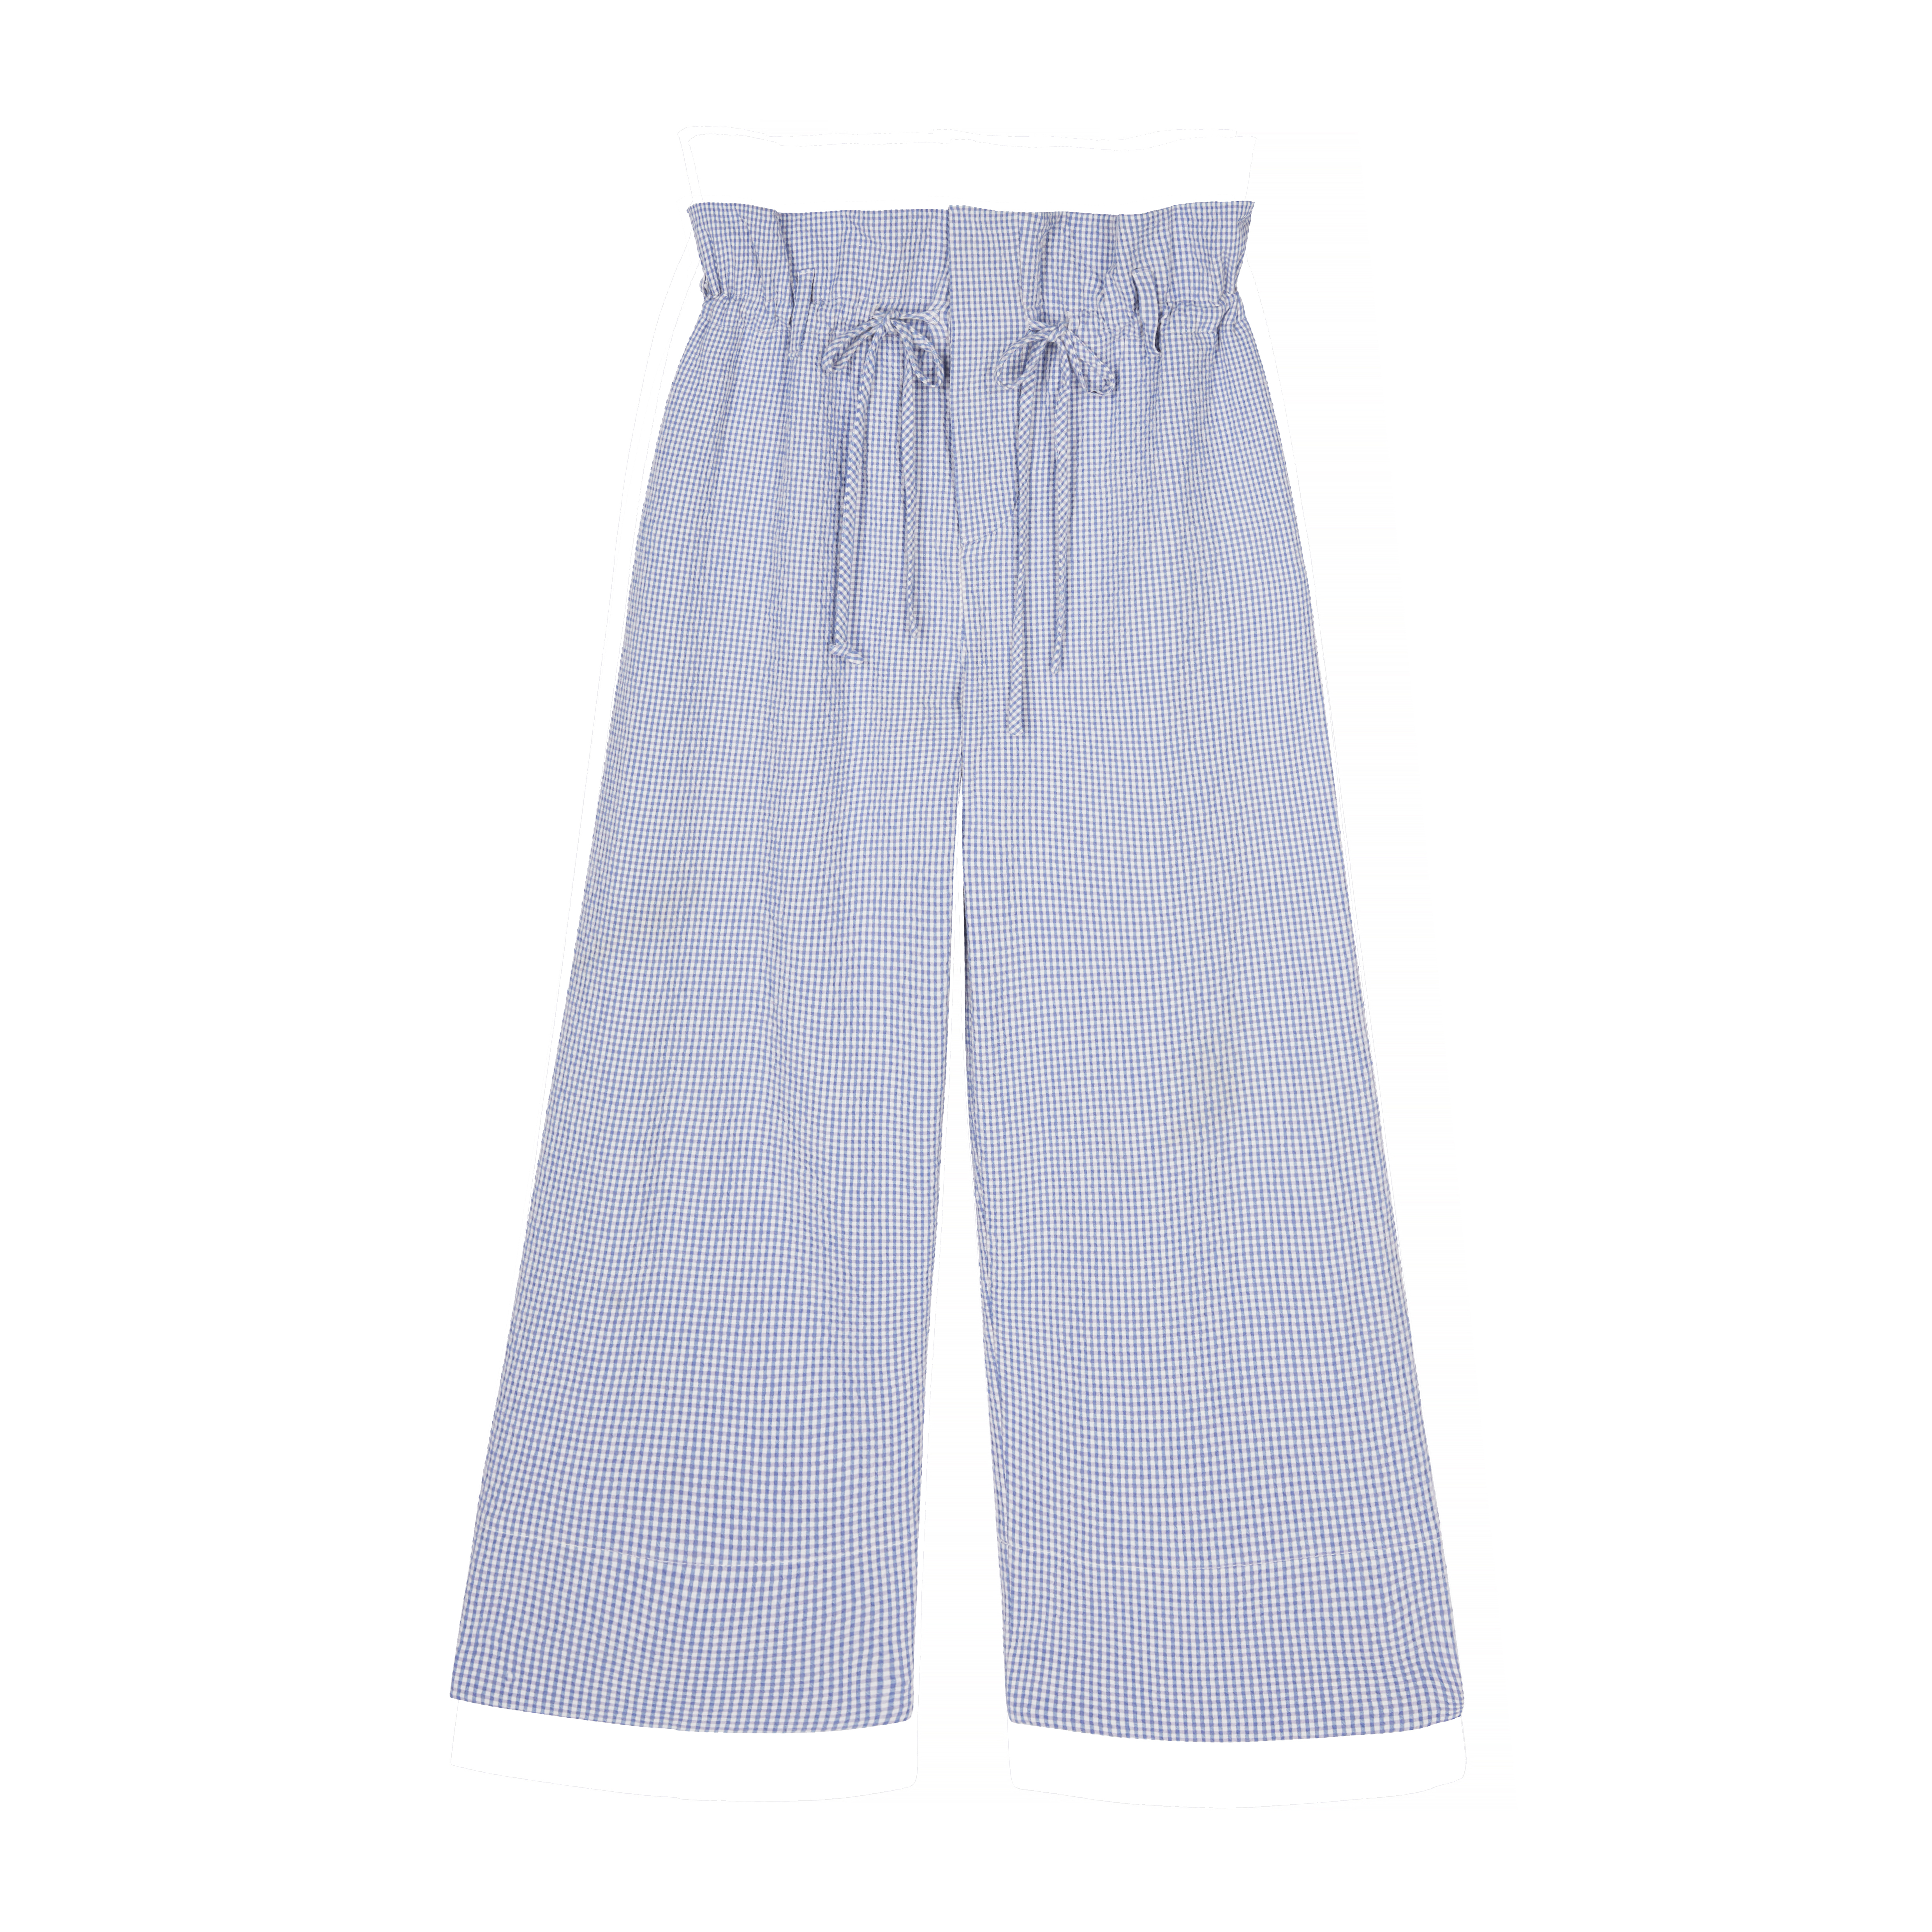 Mar Trousers - Blue by Berta Cabestany on curated-crowd.com